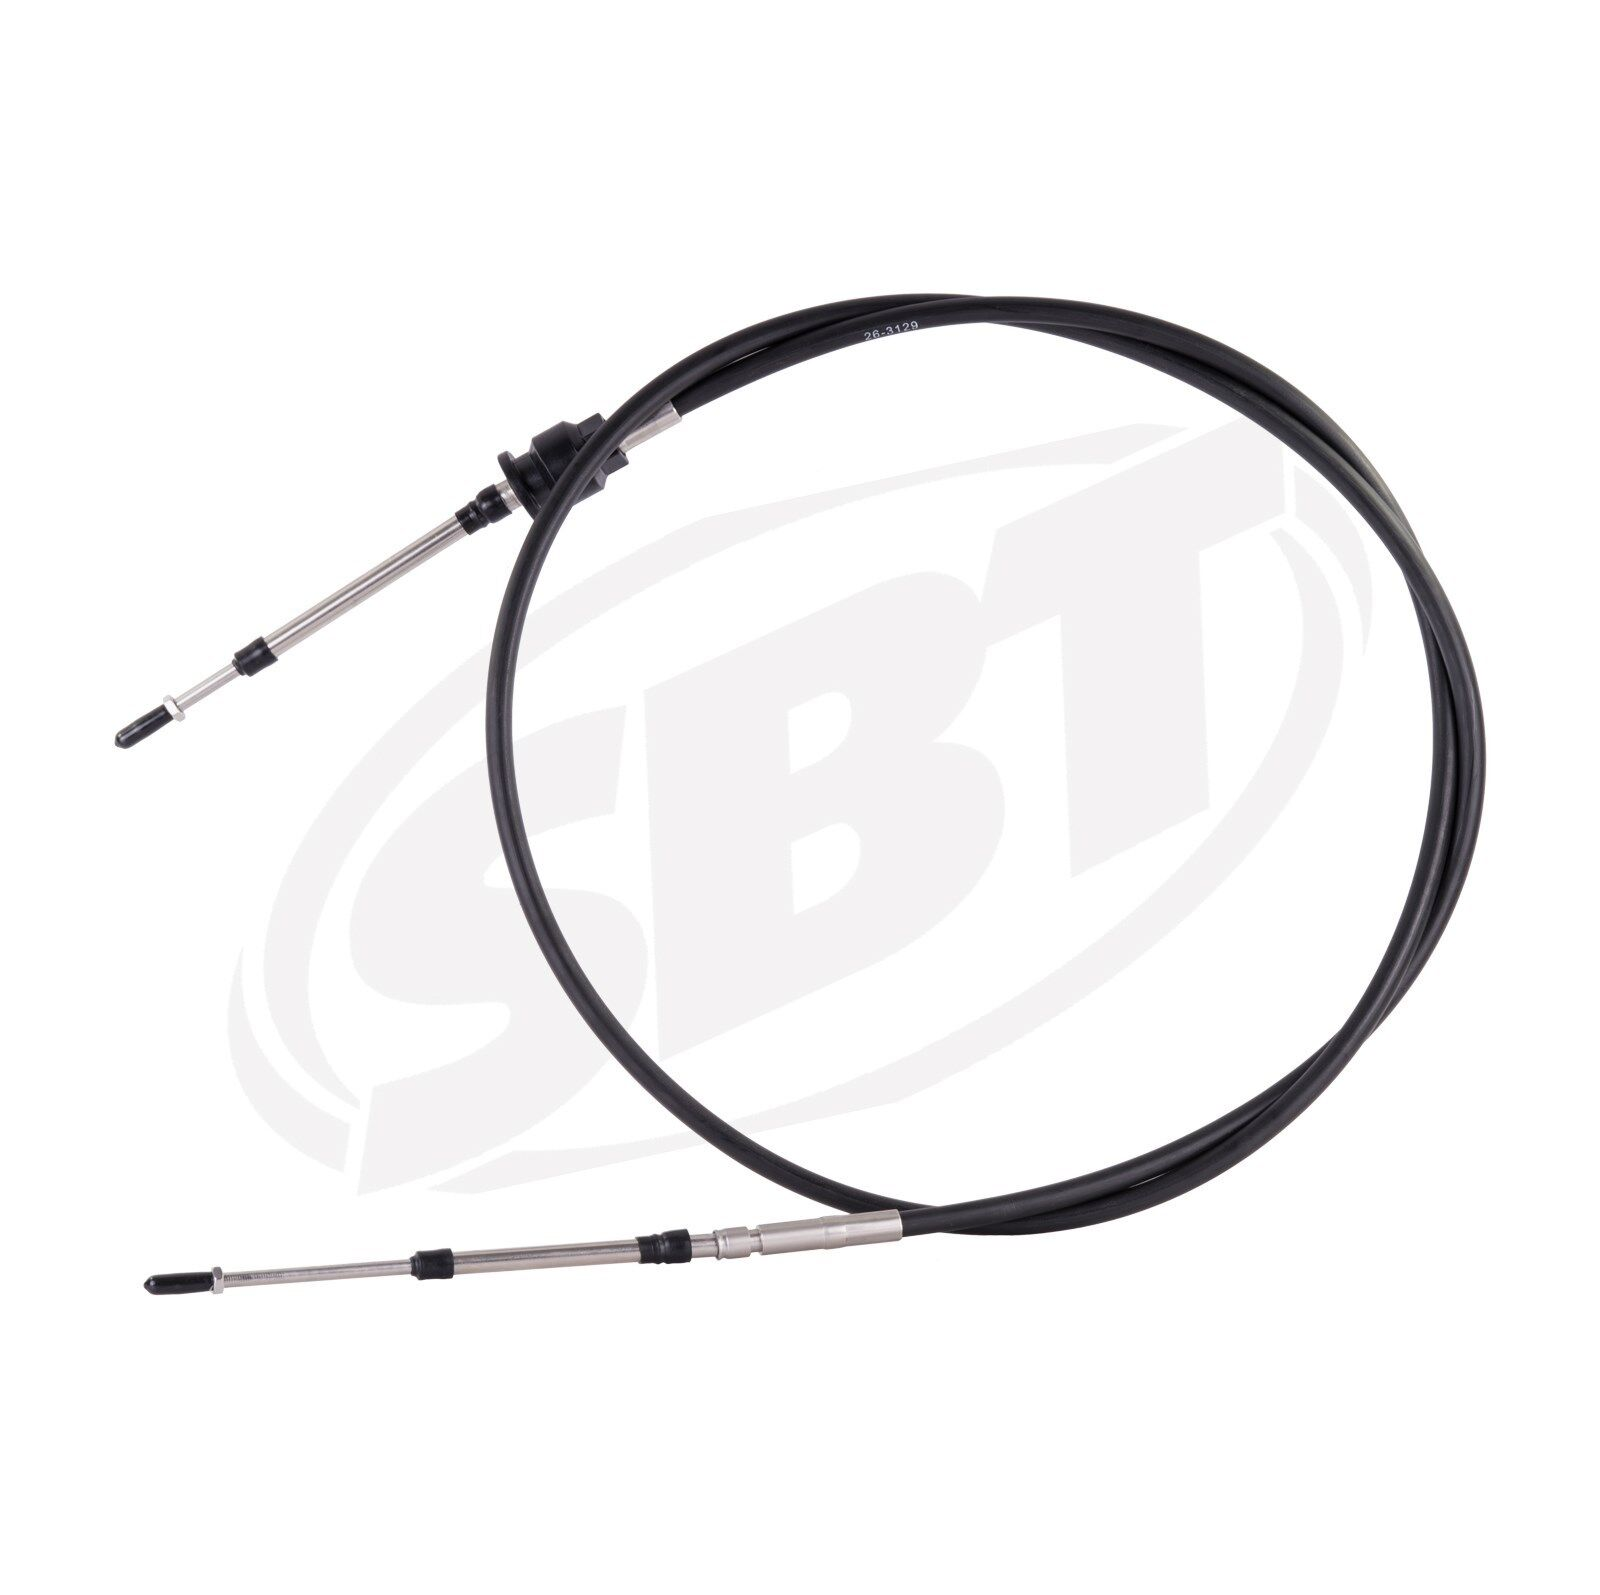 Seadoo Steering Cable RXT 277001578 2005 2009/GTX 155 Wake